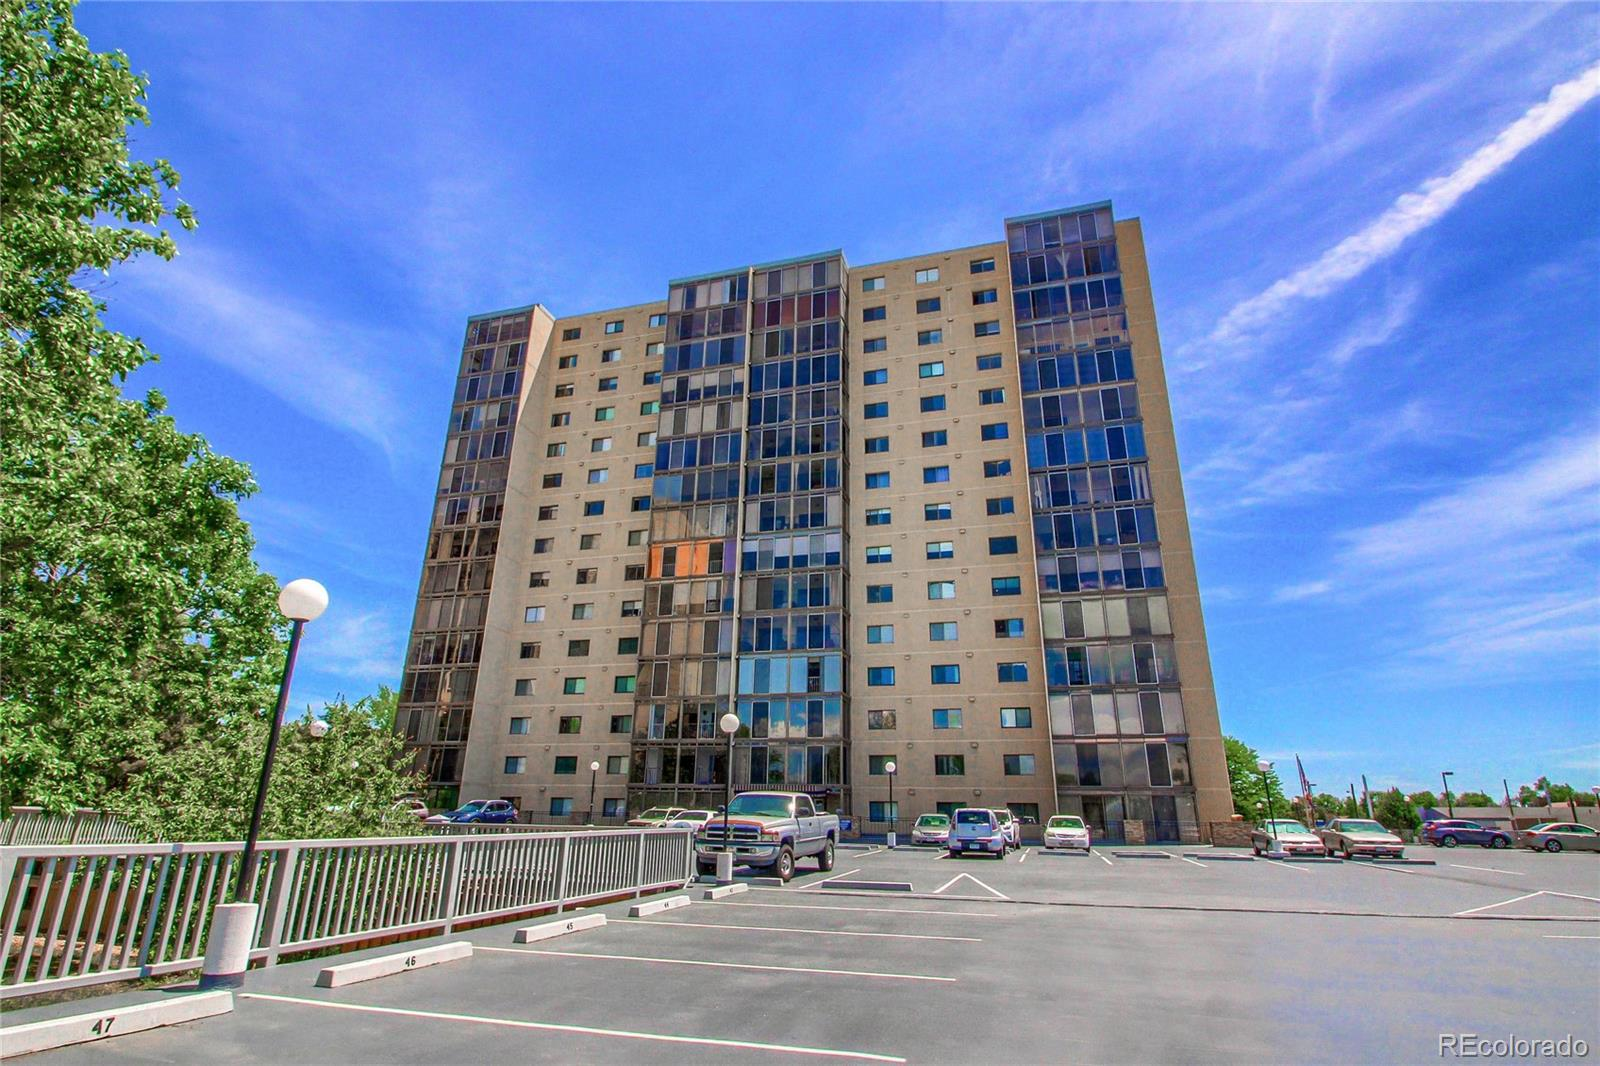 12th Floor Unit in Candlewycke. This spacious unit offers expansive views from the enclosed Lanai and gorgeous, professionally installed porcelain tile floors, updated baseboards and new paint throughout. The family room and master bedroom floors are wood plank porcelain tiles. The Lanai and 2nd bedroom offer porcelain tiles with glass tile inlays. This unit is clean and well maintained. The kitchen offers solid wood cabinets and laminate counters. Family room includes a wet bar. 2 Storage Closets, 1 deeded garage space and 1 reserved space are included. Storage Unit 136 in Basement and #1204 in hallway next to unit. Candlewycke is a gated community on 7 acres including tennis courts, indoor pool, gazebo, fitness center, sauna, hot tub and indoor golf driving range, ping pong and billiard tables, pond and walking trails. HOA fee includes above amenities, Heat, A/C, Trash, Recycling, Grounds Maintenance, Bldg Insurance.